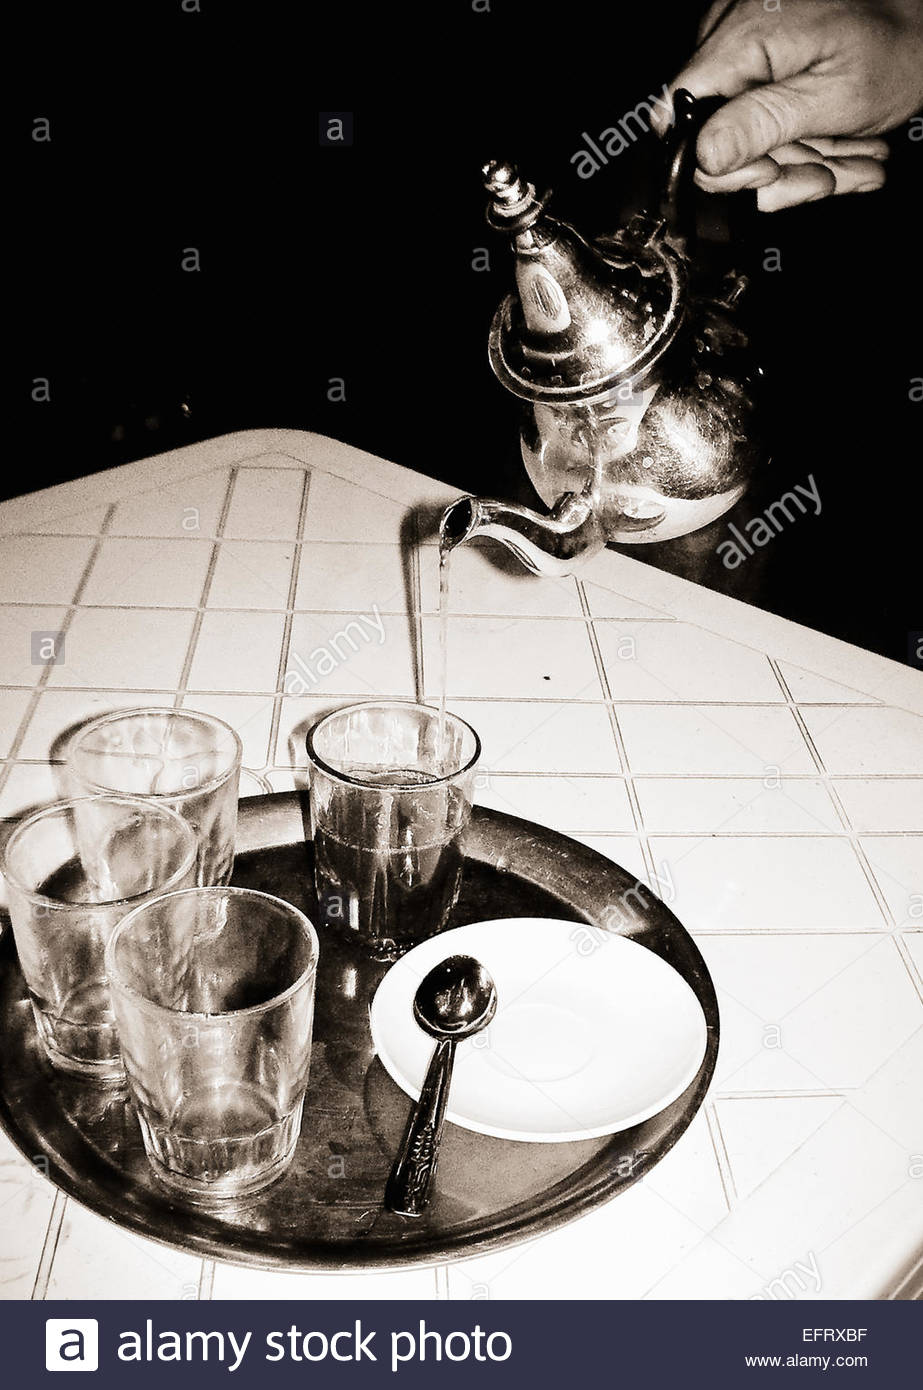 Arabic Mint Tea Poured From Silver Teapot Into Glass Restaurant Food And Drink Western Sahara Spanish Sahara Sahara - Stock Image